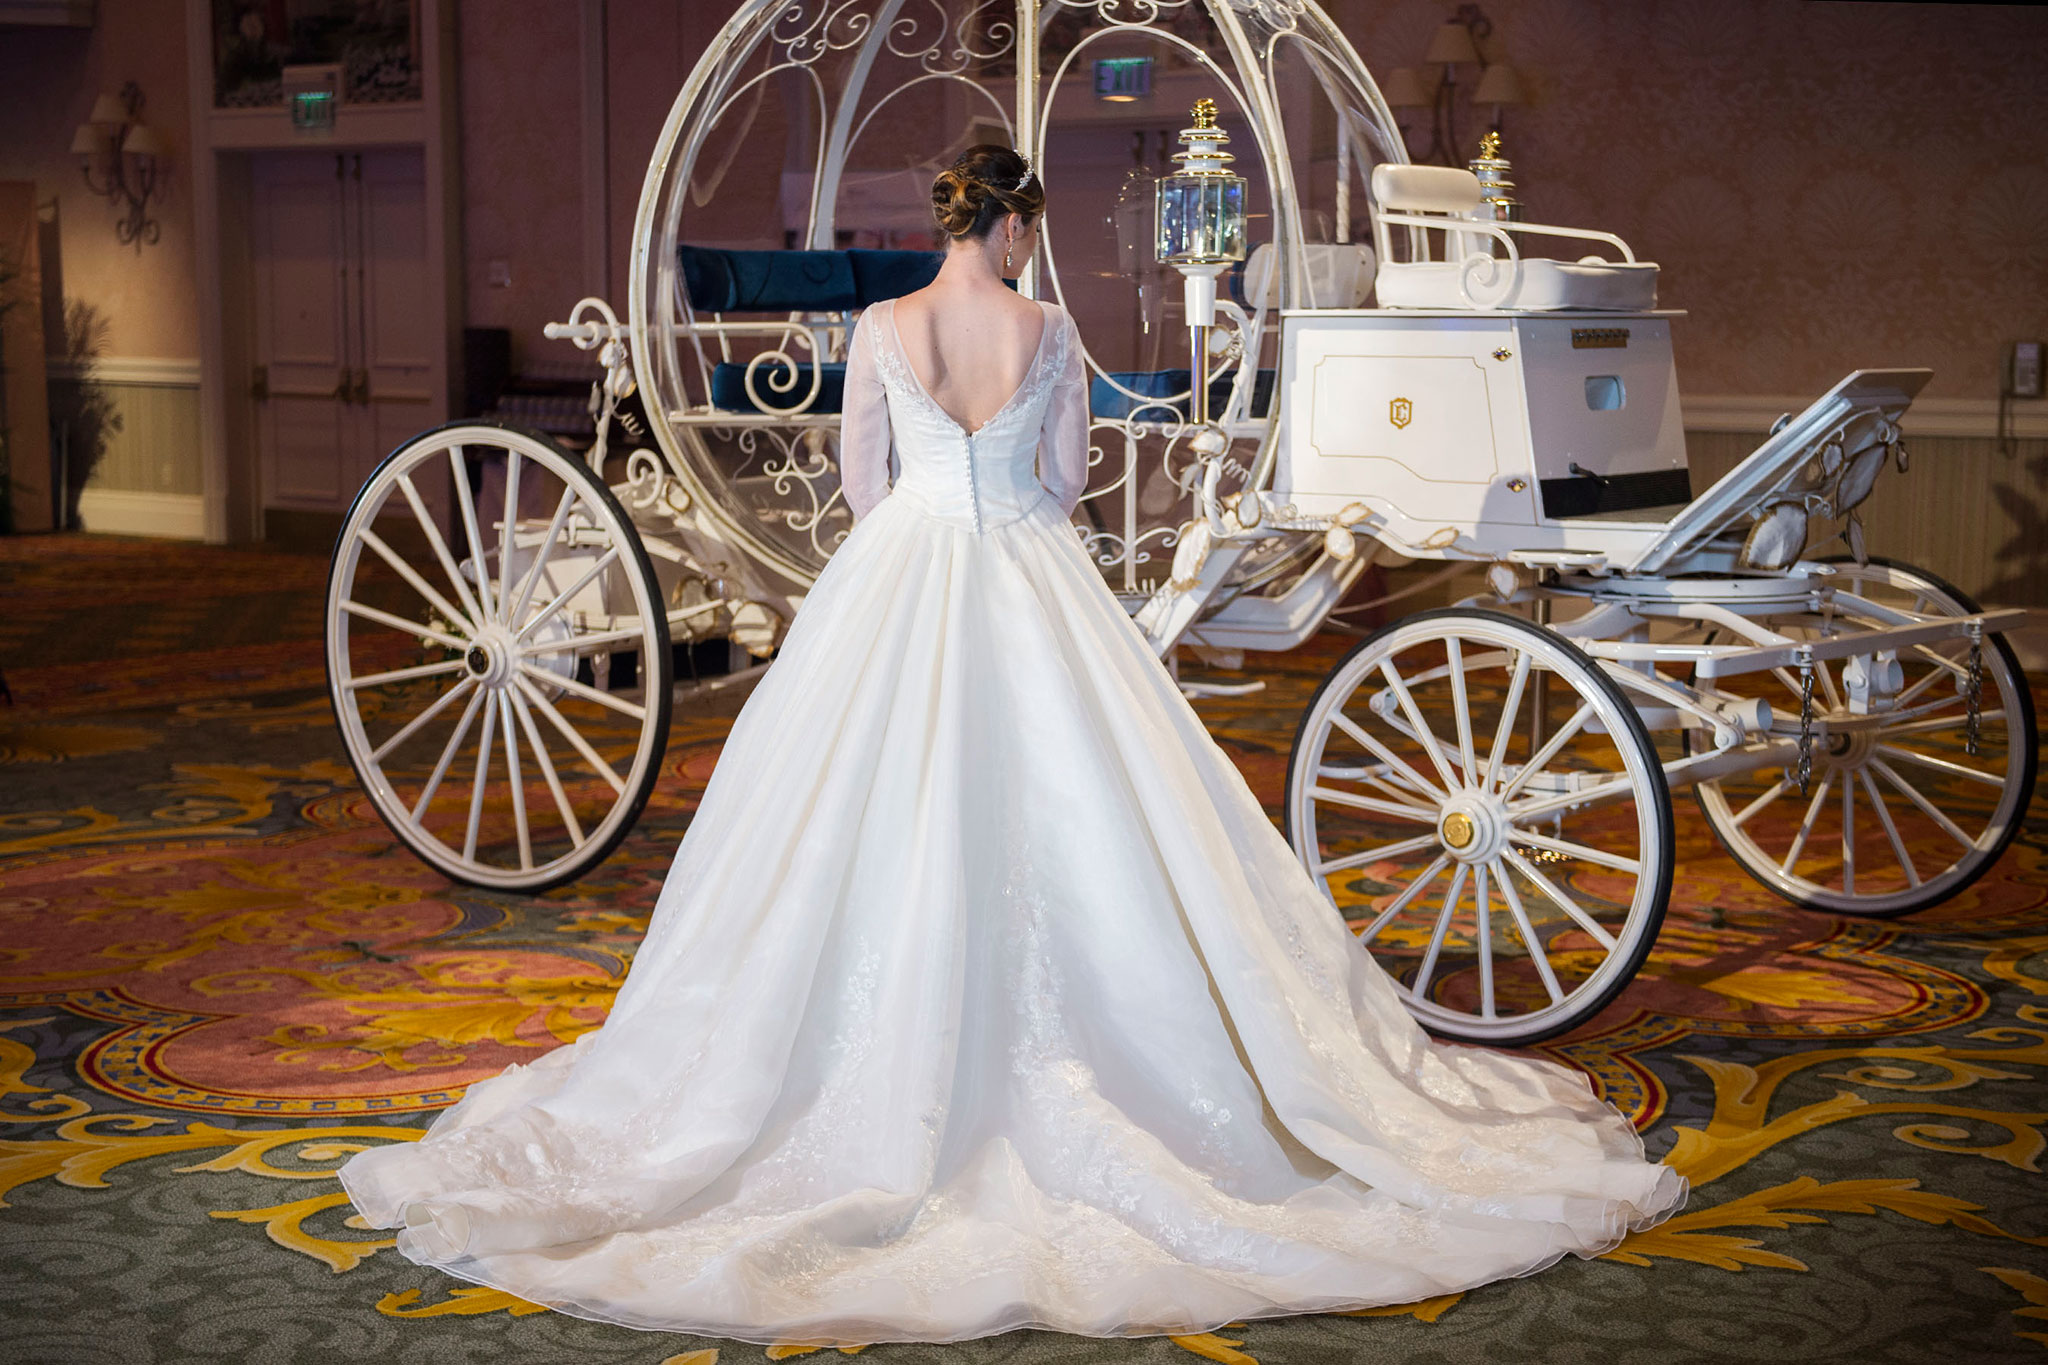 Cinderella inspired wedding dress by alfred angelo for Cinderella inspired wedding dress